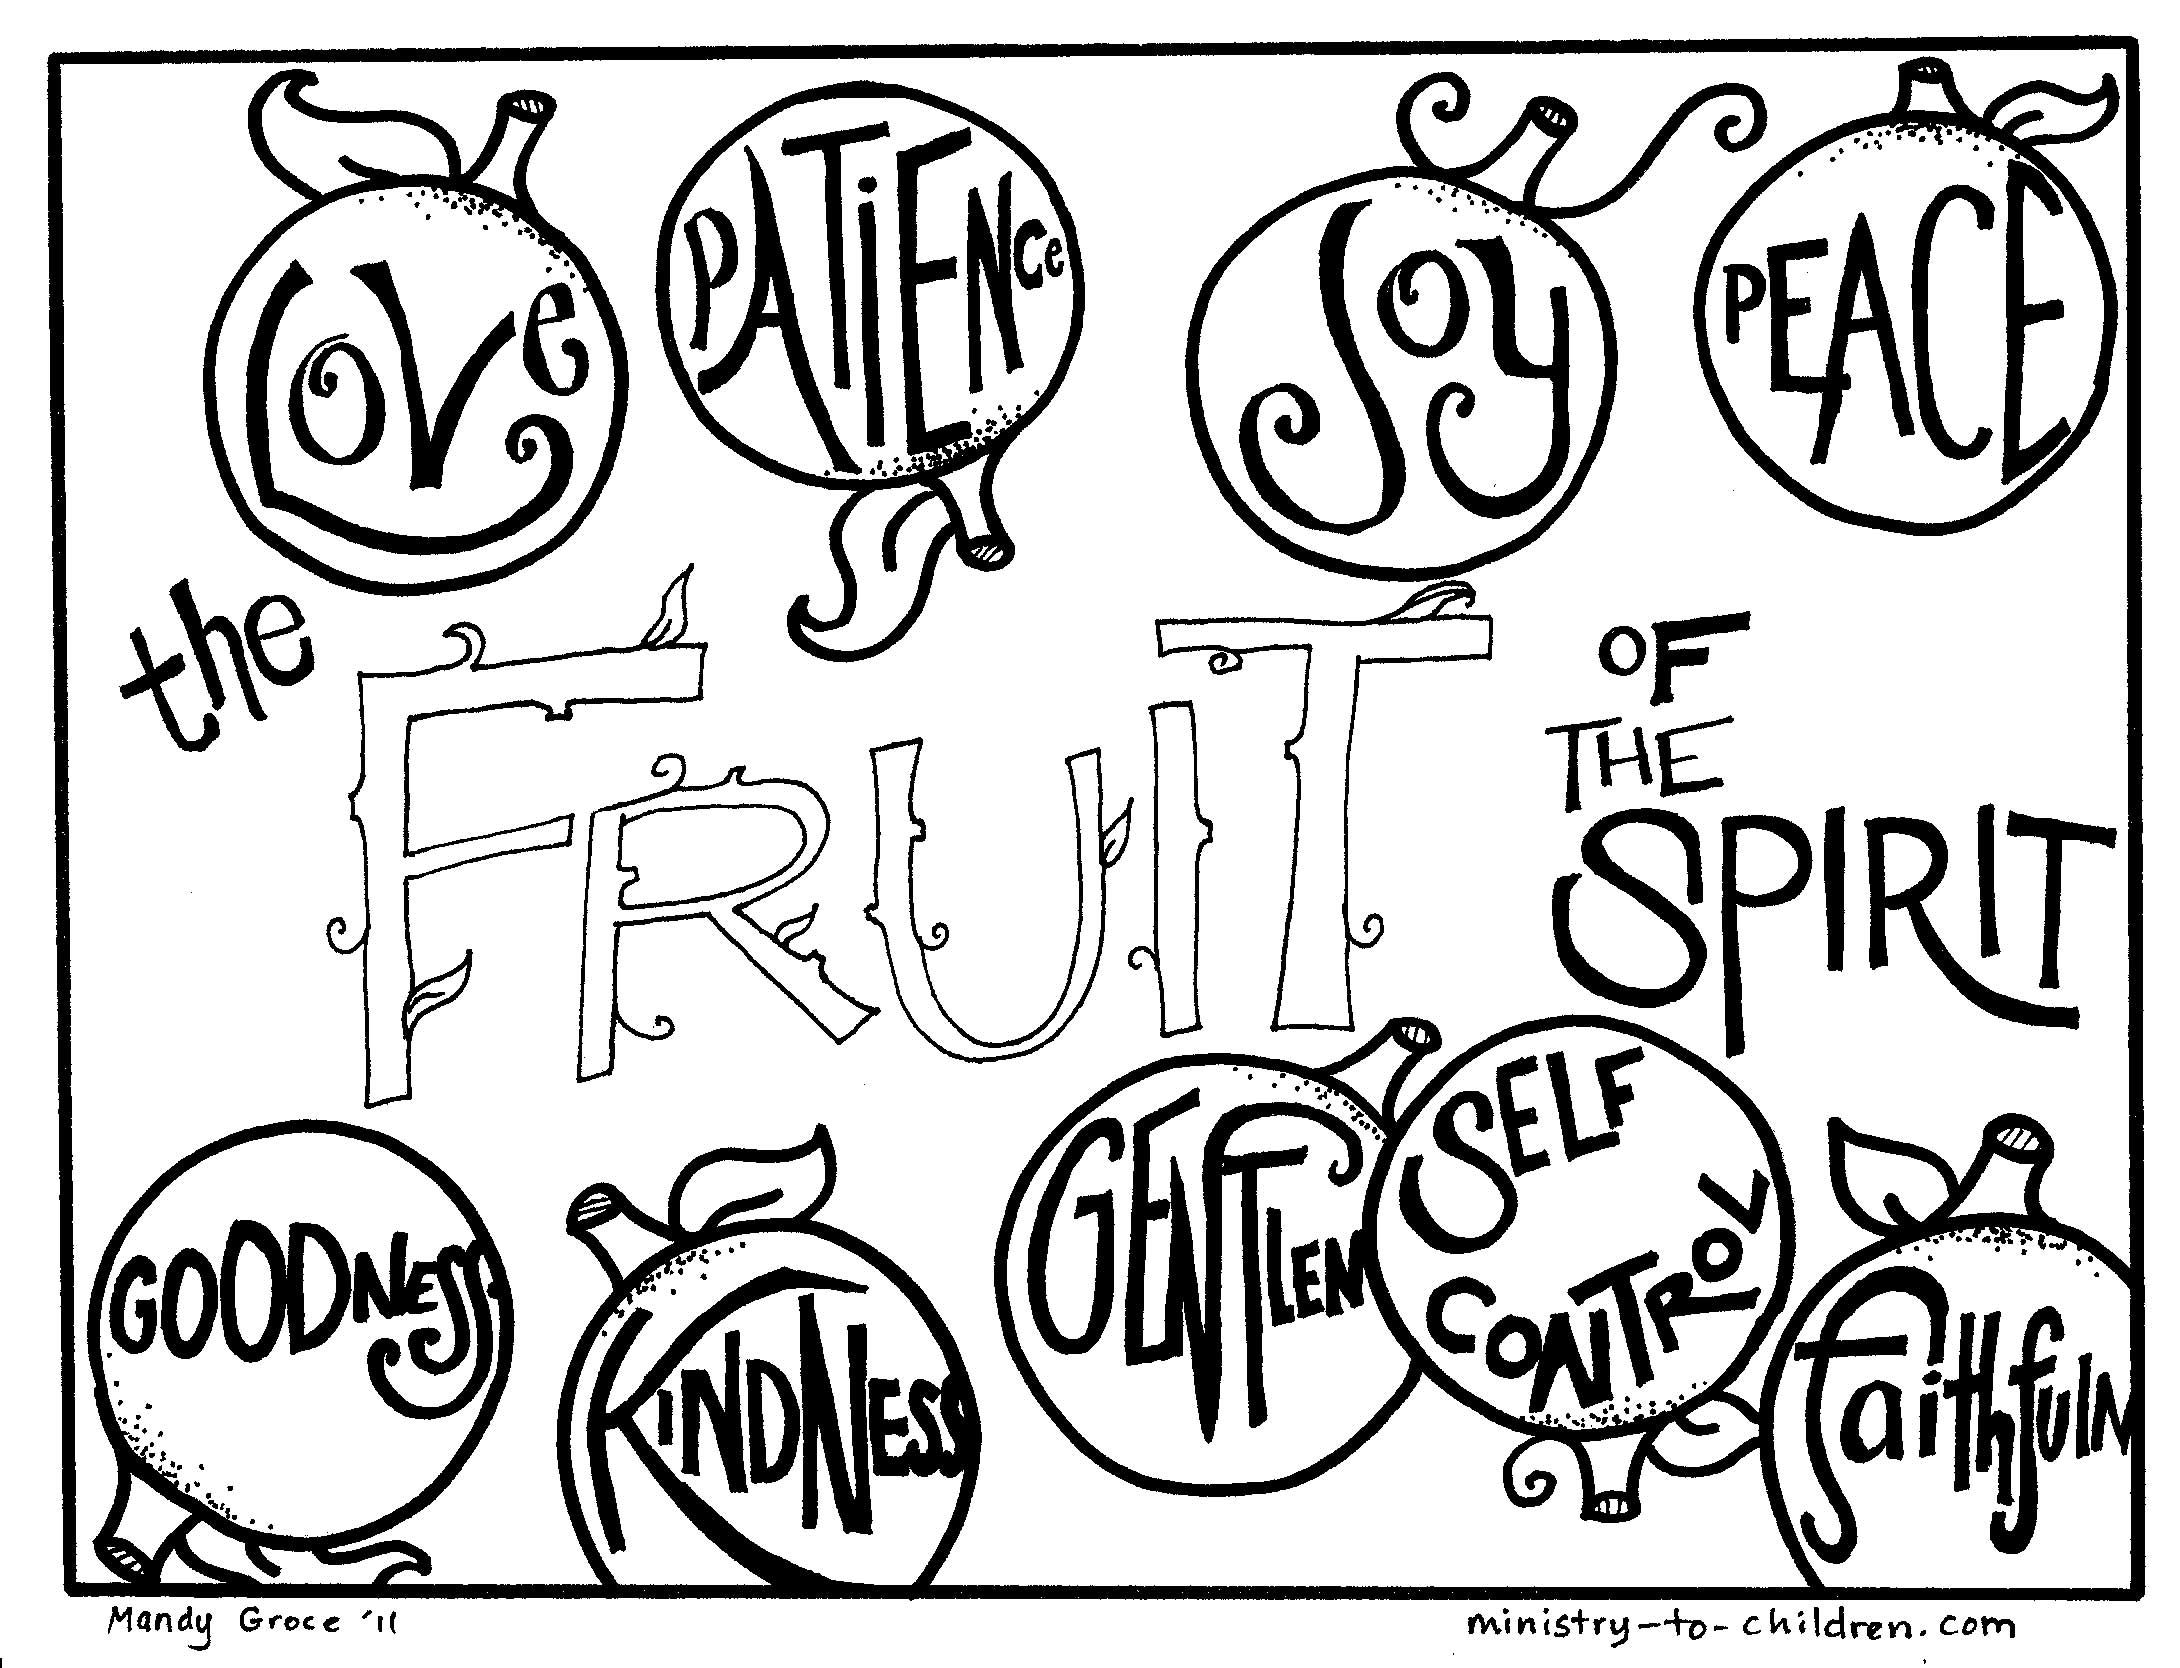 Free bible story coloring pages for kids - Printable Sunday School Coloring Pages Fruit Of The Spirit Coloring Pages Free Printables